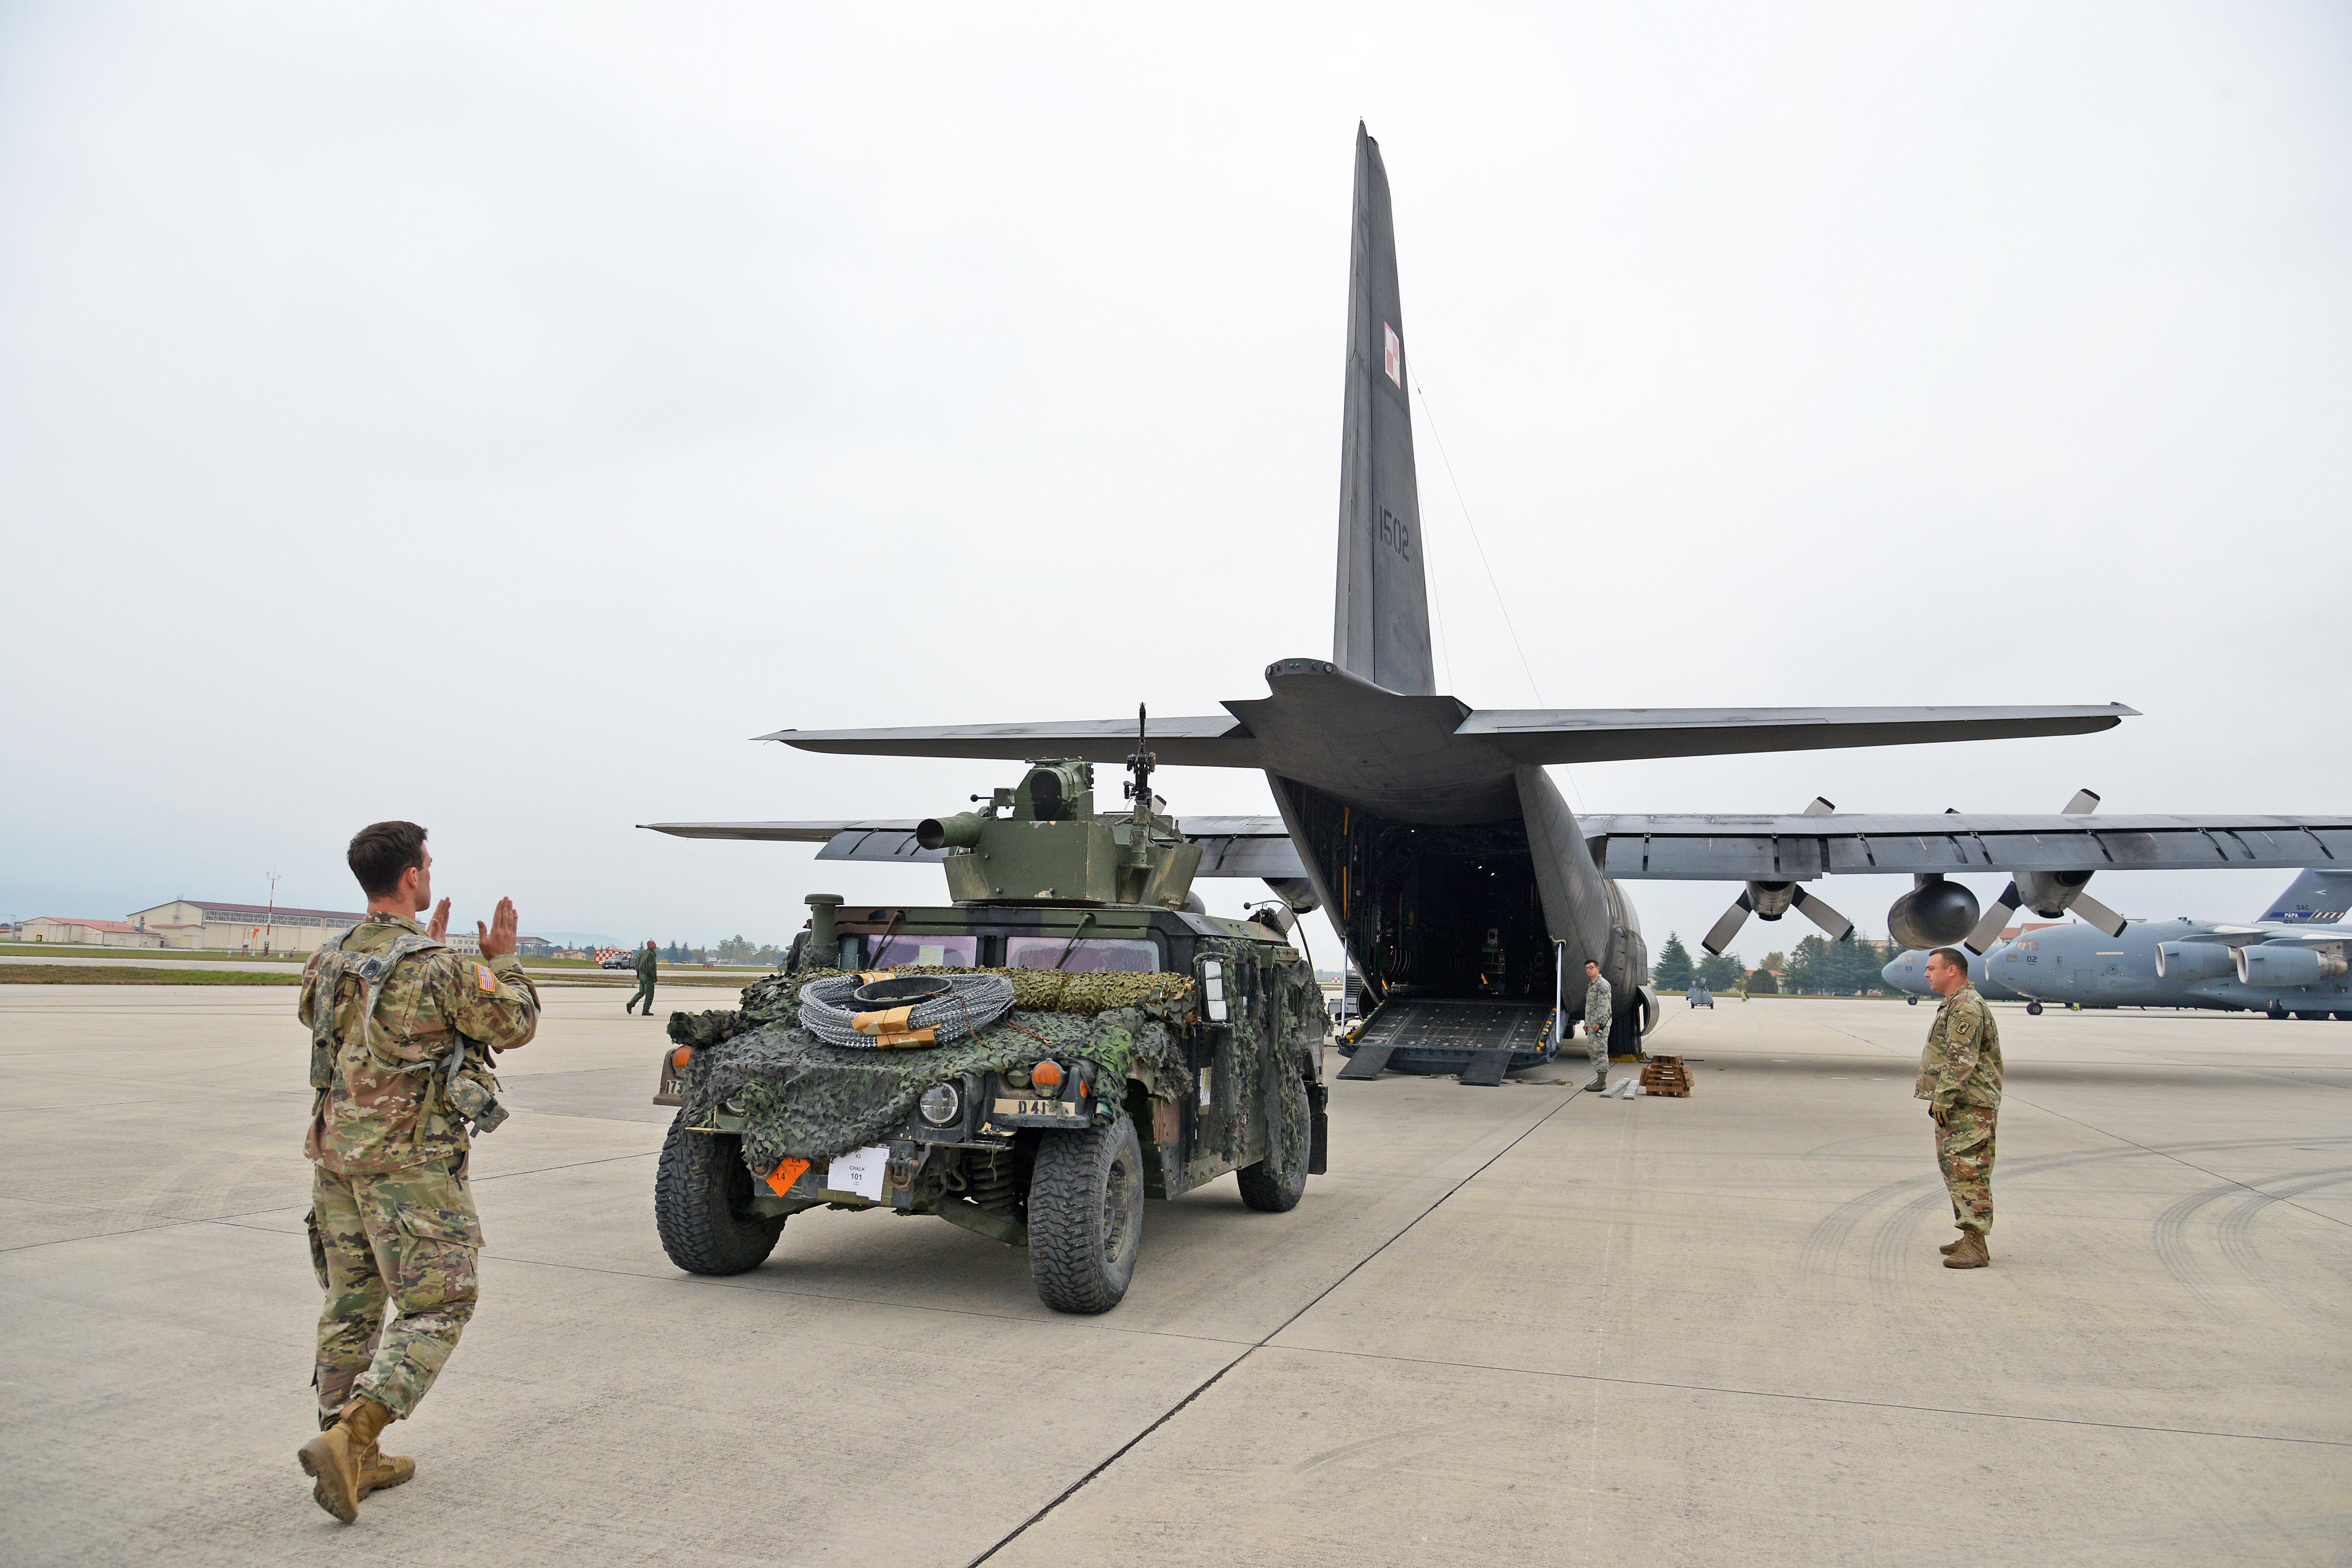 One High Mobility Multipurpose Wheeled Vehicle from 2nd Battalion, 503rd Infantry Regiment, 173rd Airborne Brigade, gets loaded into a Polish Air Force C-130 Hercules from 33rd ATB at Aviano Air Base, Italy, Oct. 11, 2017 during Exercise Swift Response 2017, Phase 2. Swift Response 2017 links to Exercise Saber Guardian 17, a U.S. Army Europe-led, multinational exercise that spans across Bulgaria, Hungary, and Romania with more than 25,000 service members from 22 allied and partner nations. (U.S. Army Photos by Visual Information Specialist Paolo Bovo/Released)